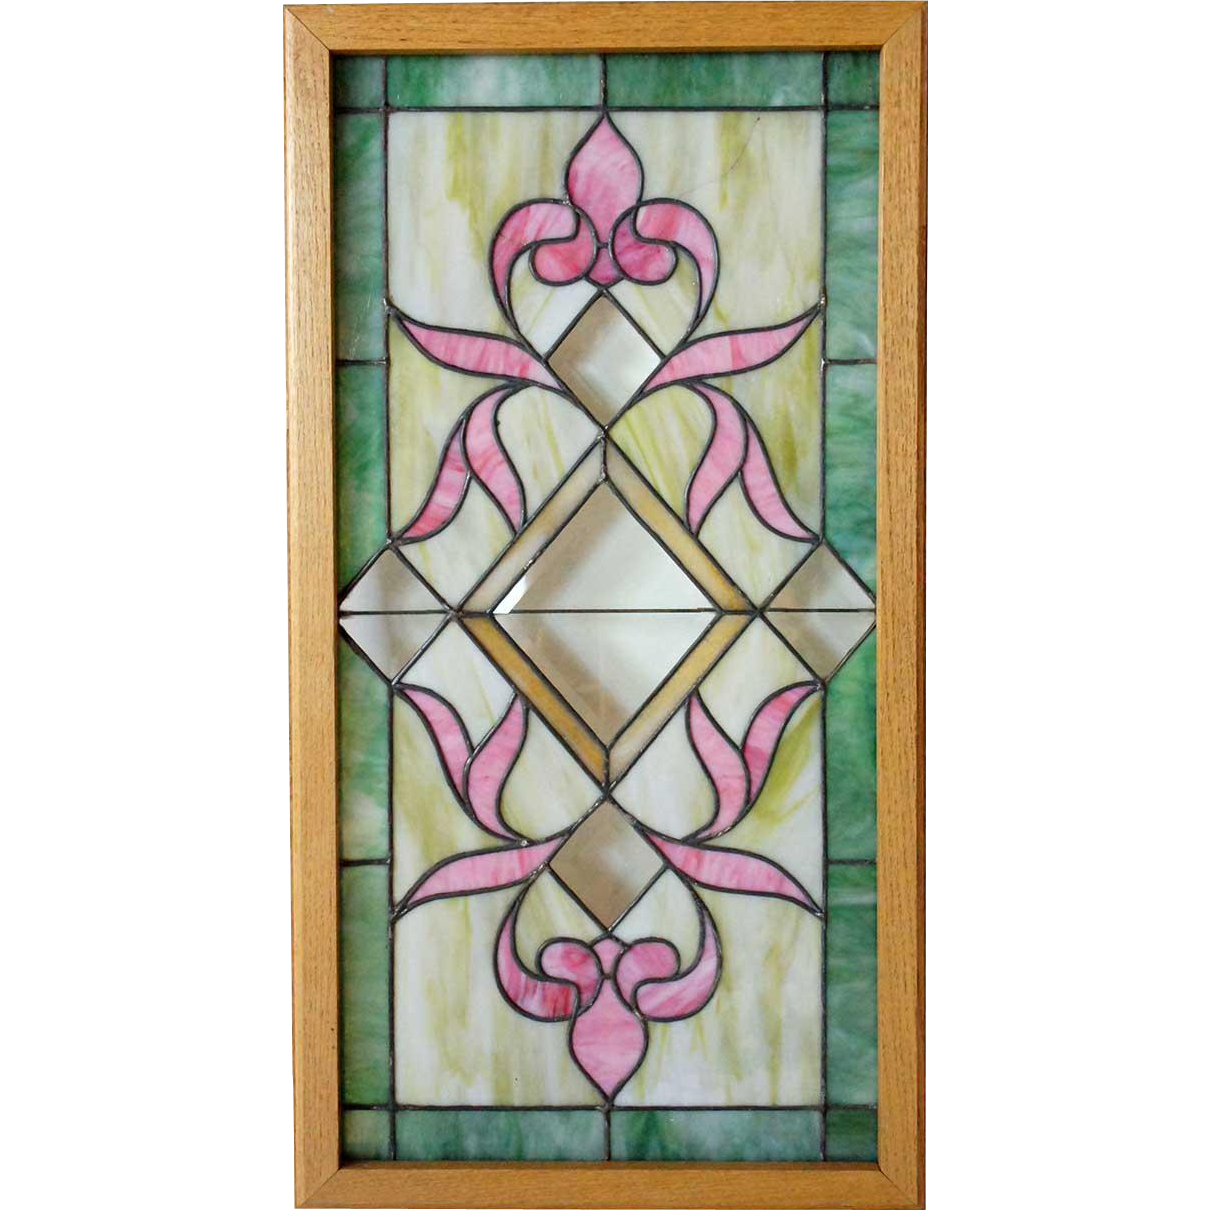 American Stained, Leaded and Beveled Glass Window